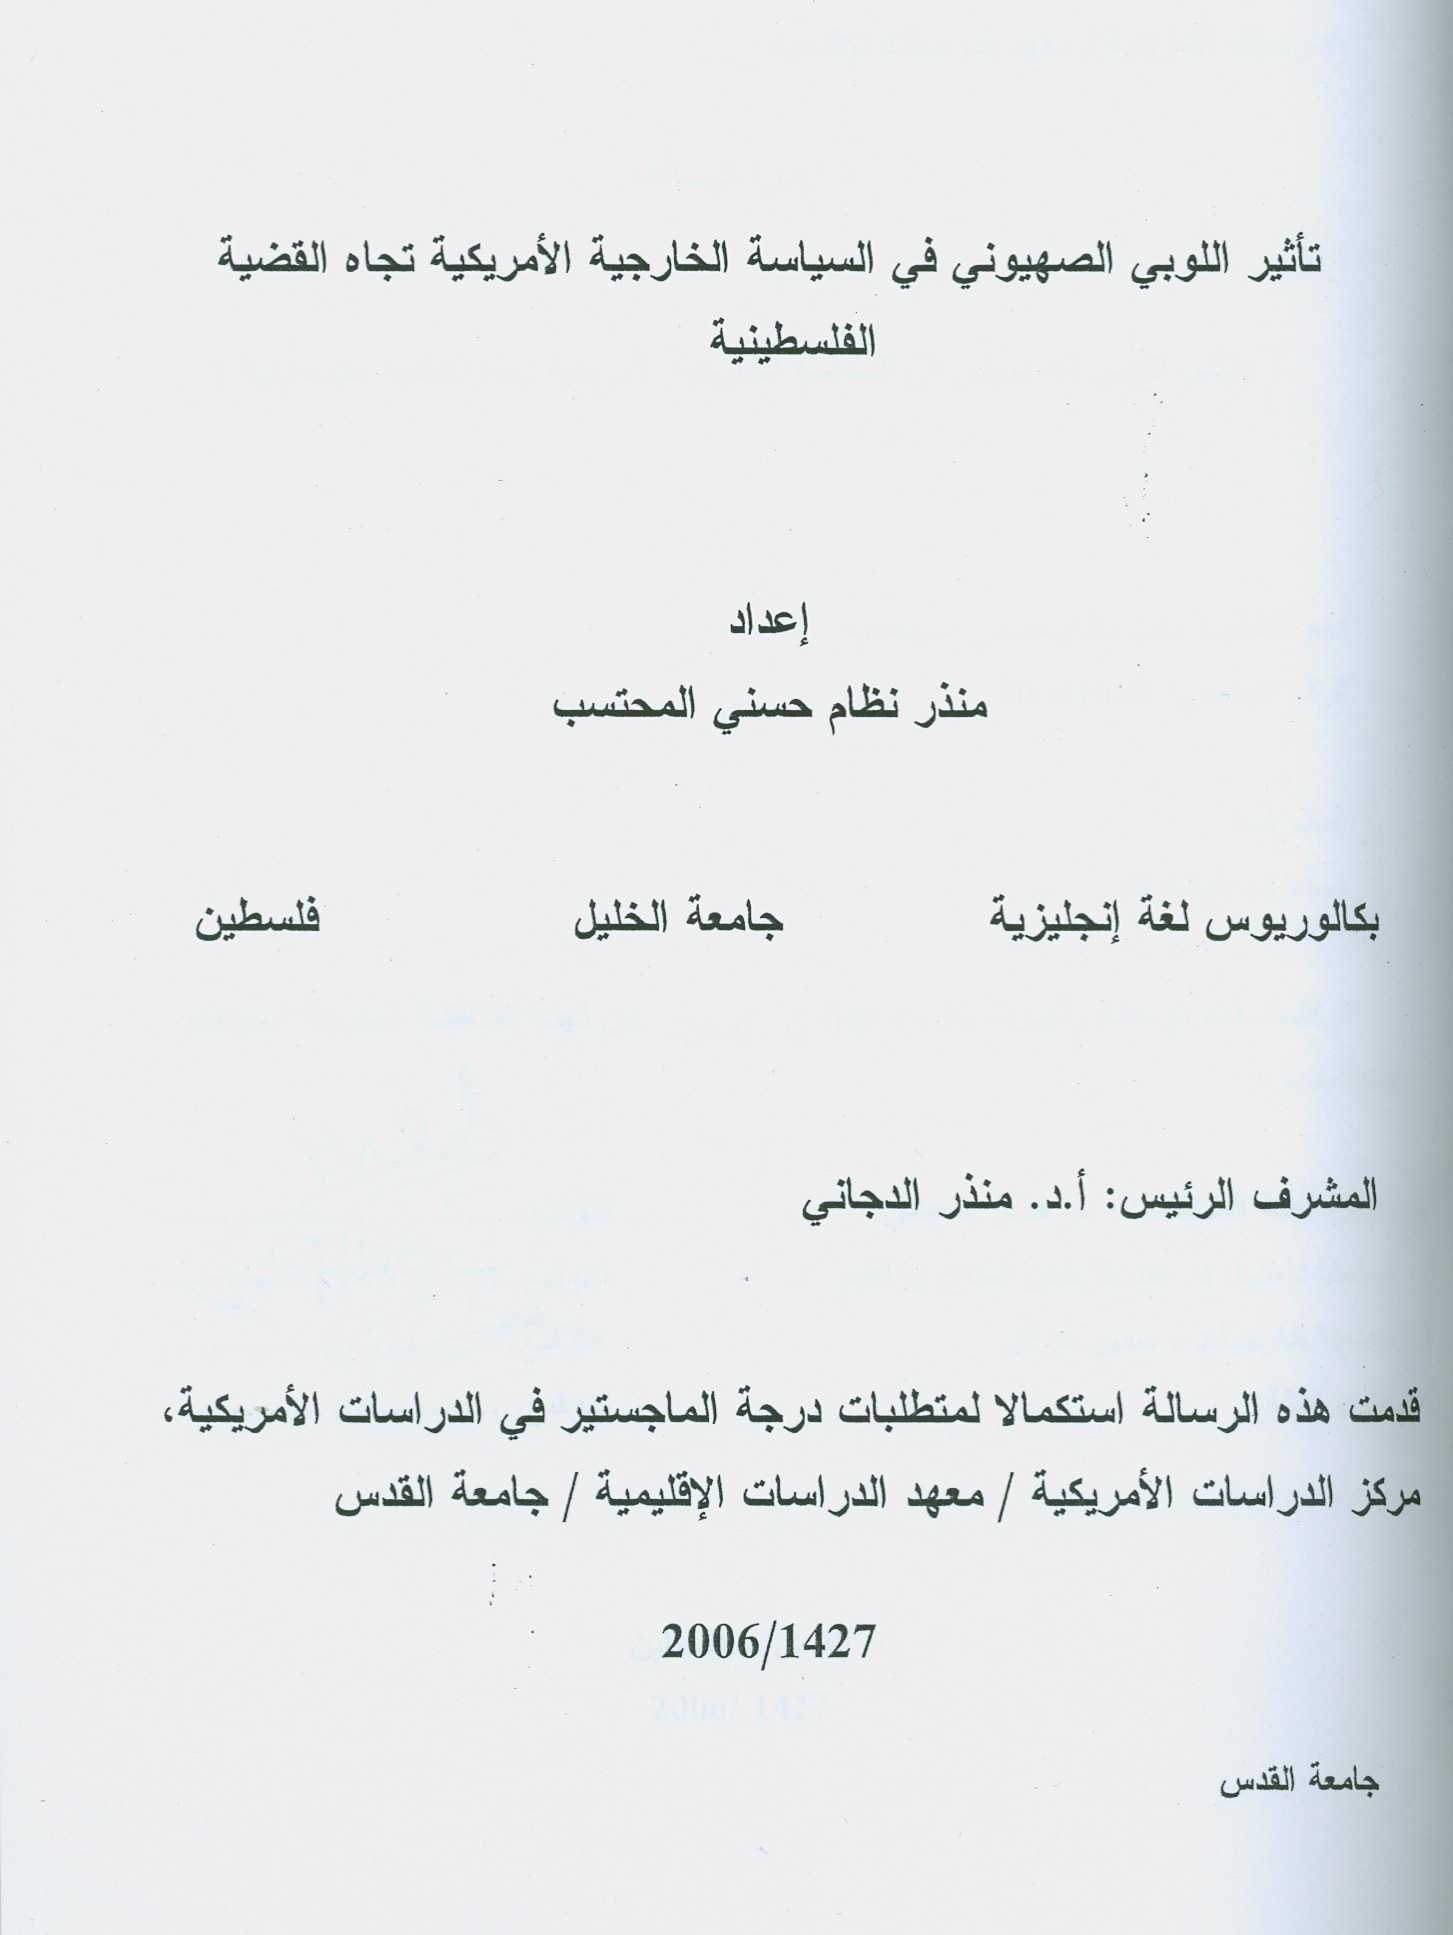 c9dc7cb672c8c Abstract(arabic) · Abstract(English) · Table of contents · Full Text